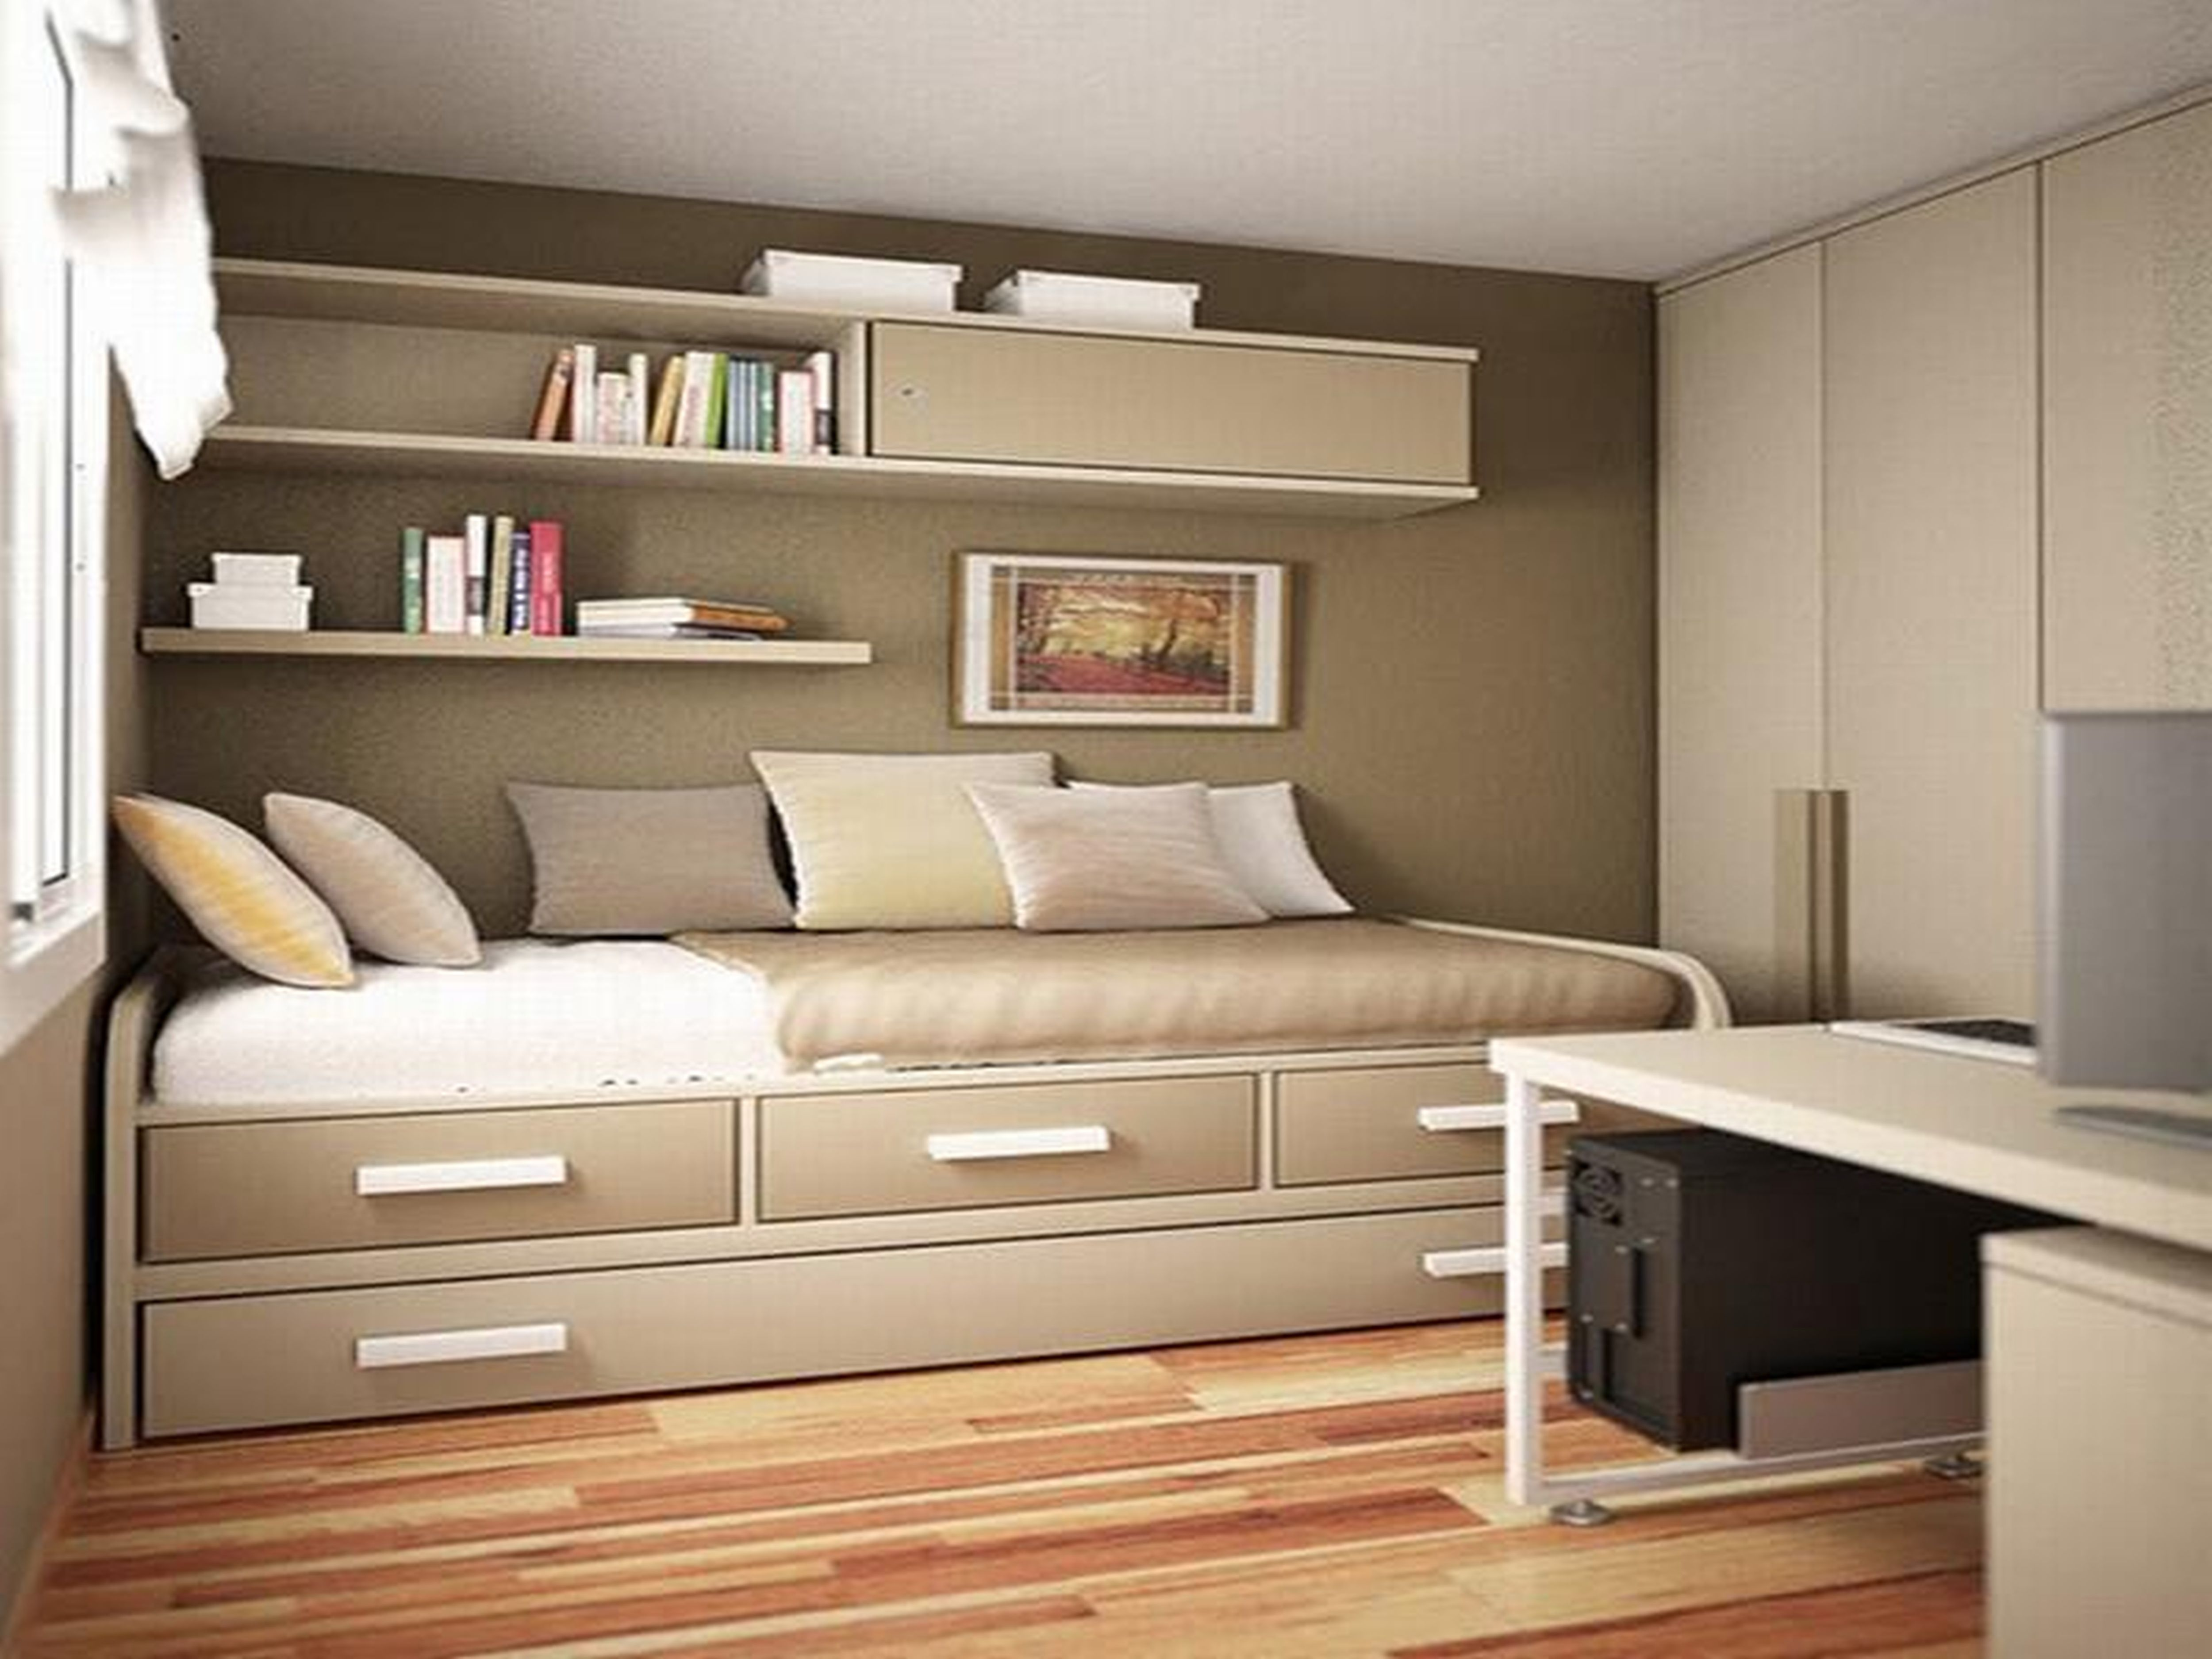 Glamorous Bedroom Design Ideas With Cream Bed Sets With Cabinet